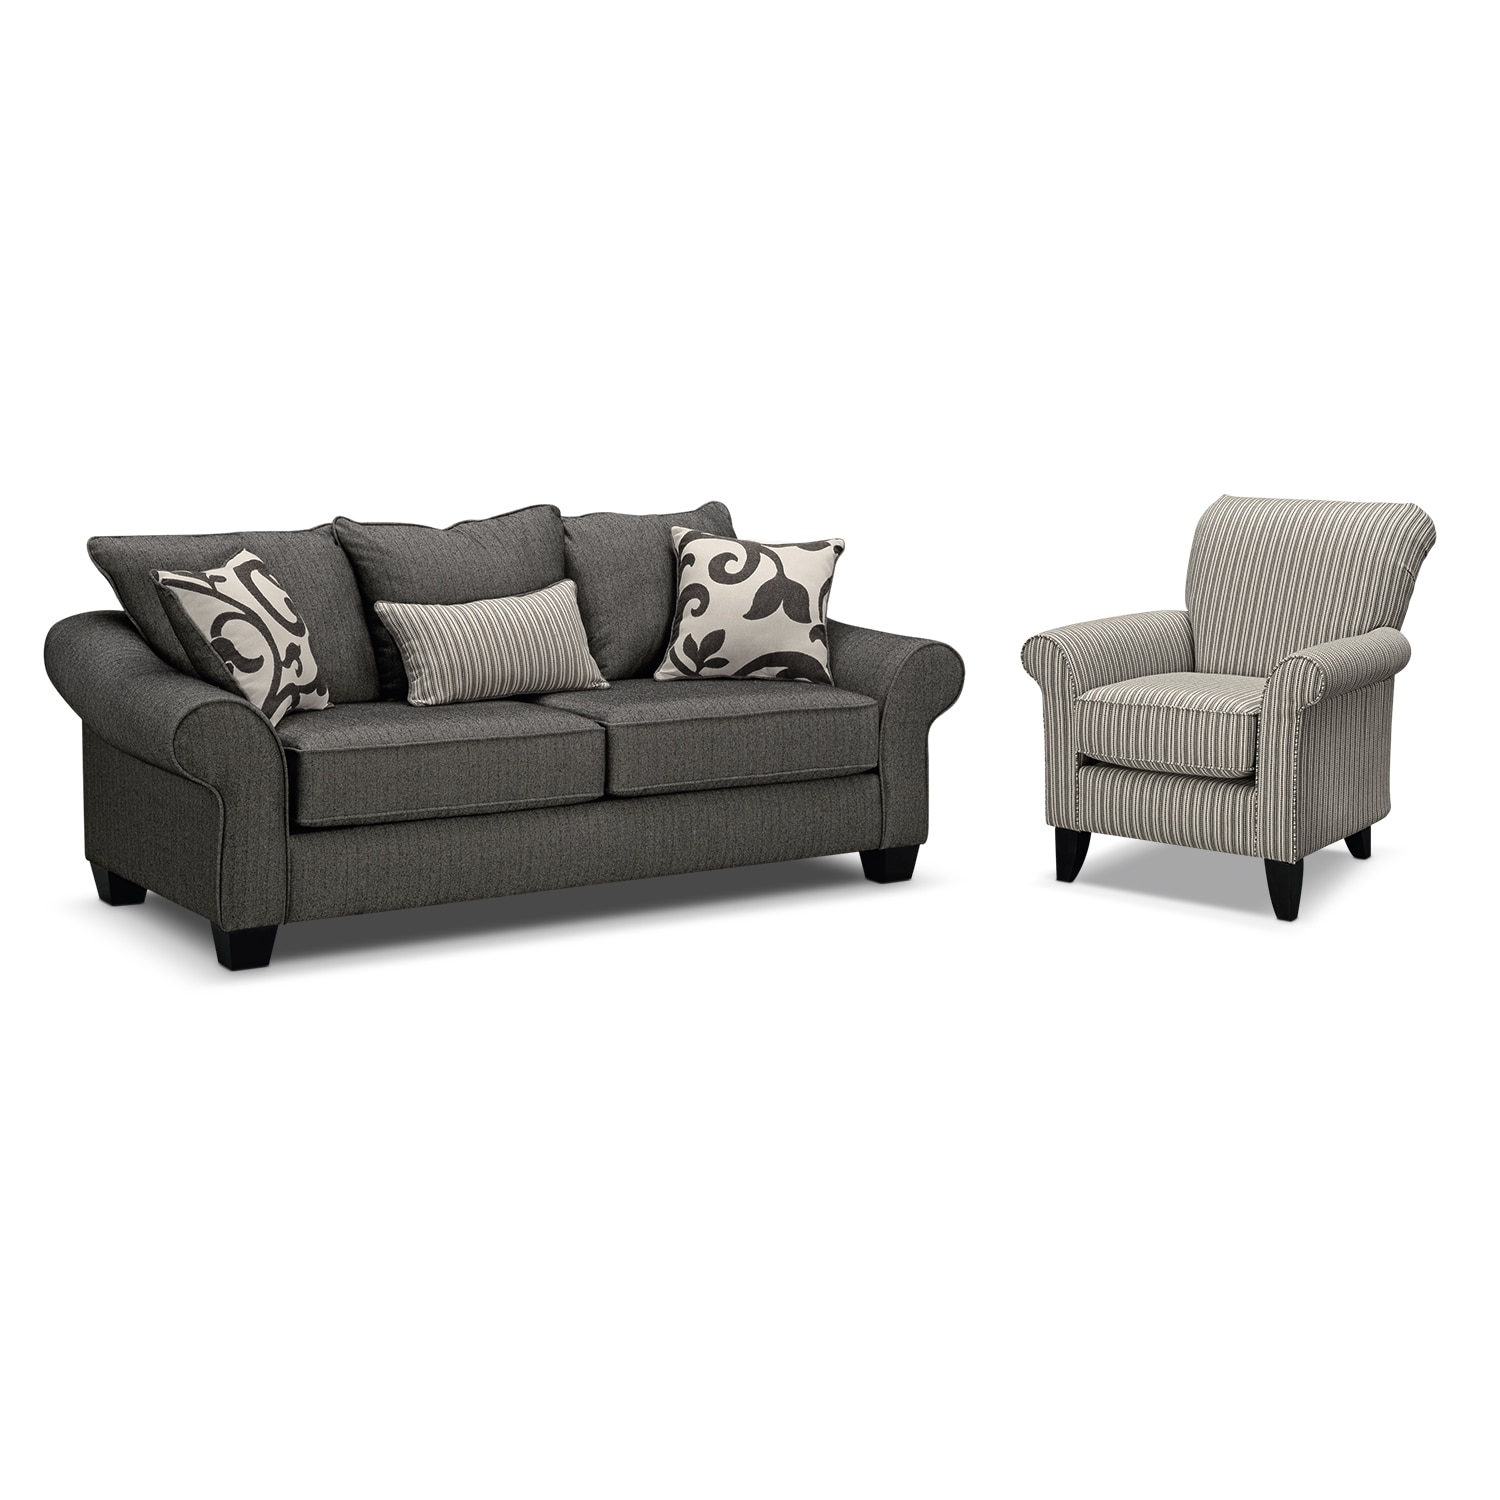 furniture colette full innerspring sleeper sofa and accent chair set